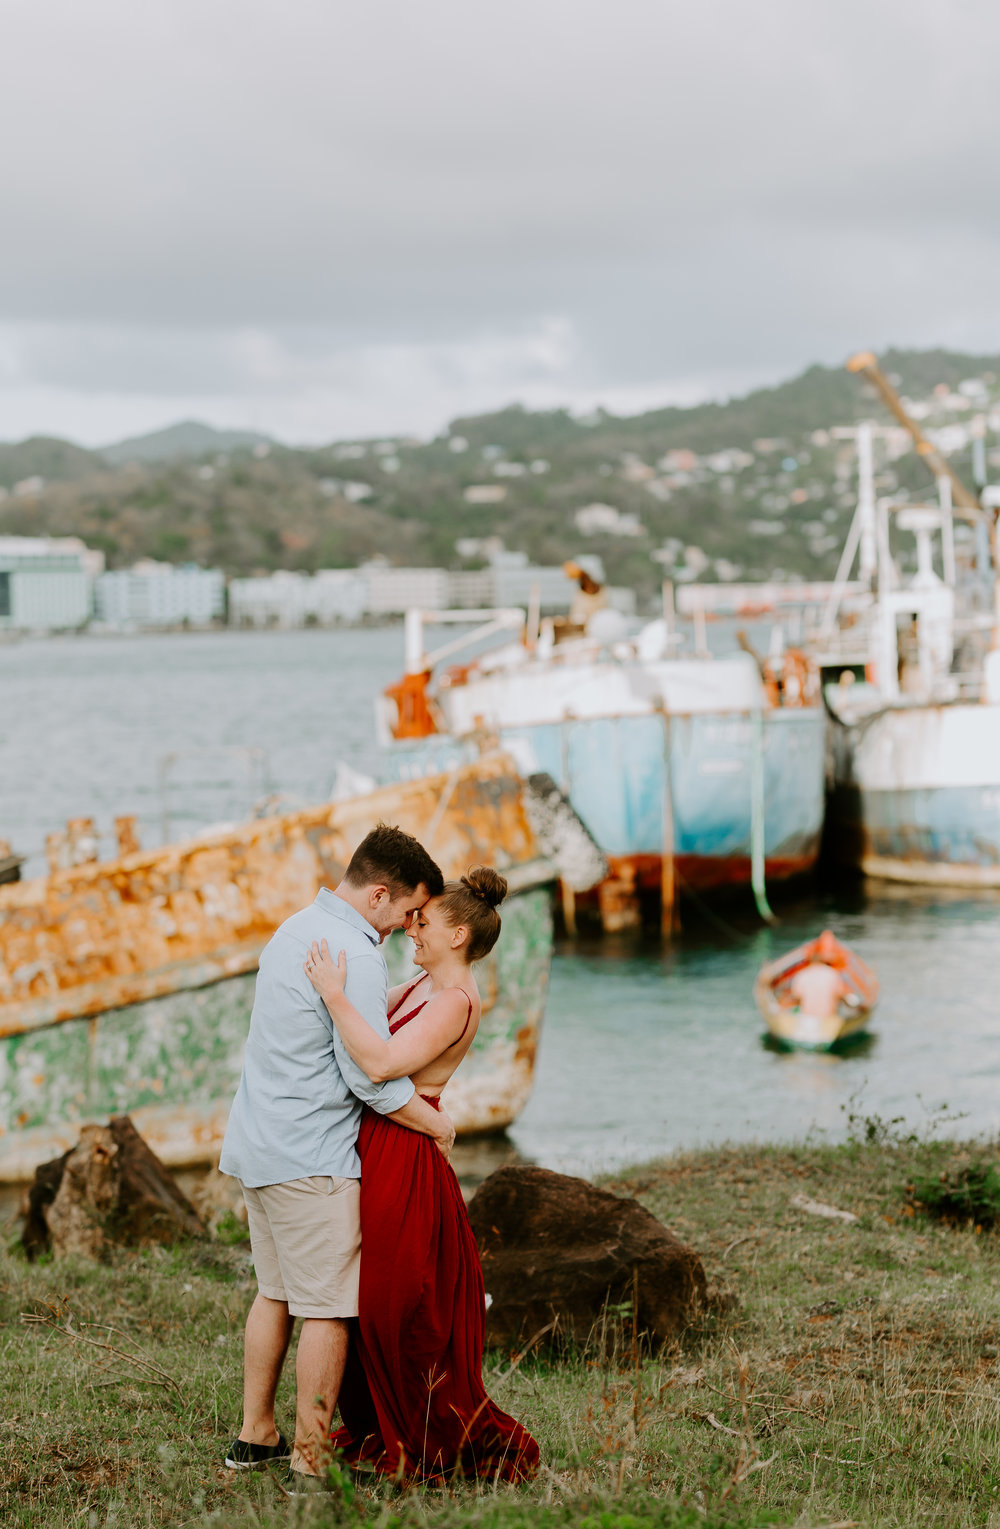 nicole-daacke-photography-st-lucia-destination-wedding-photographer-day-after-session-castries-sandals-resort-adventure-island-engagement-soufriere-piton-adventure-session-photos-photographer-28.jpg